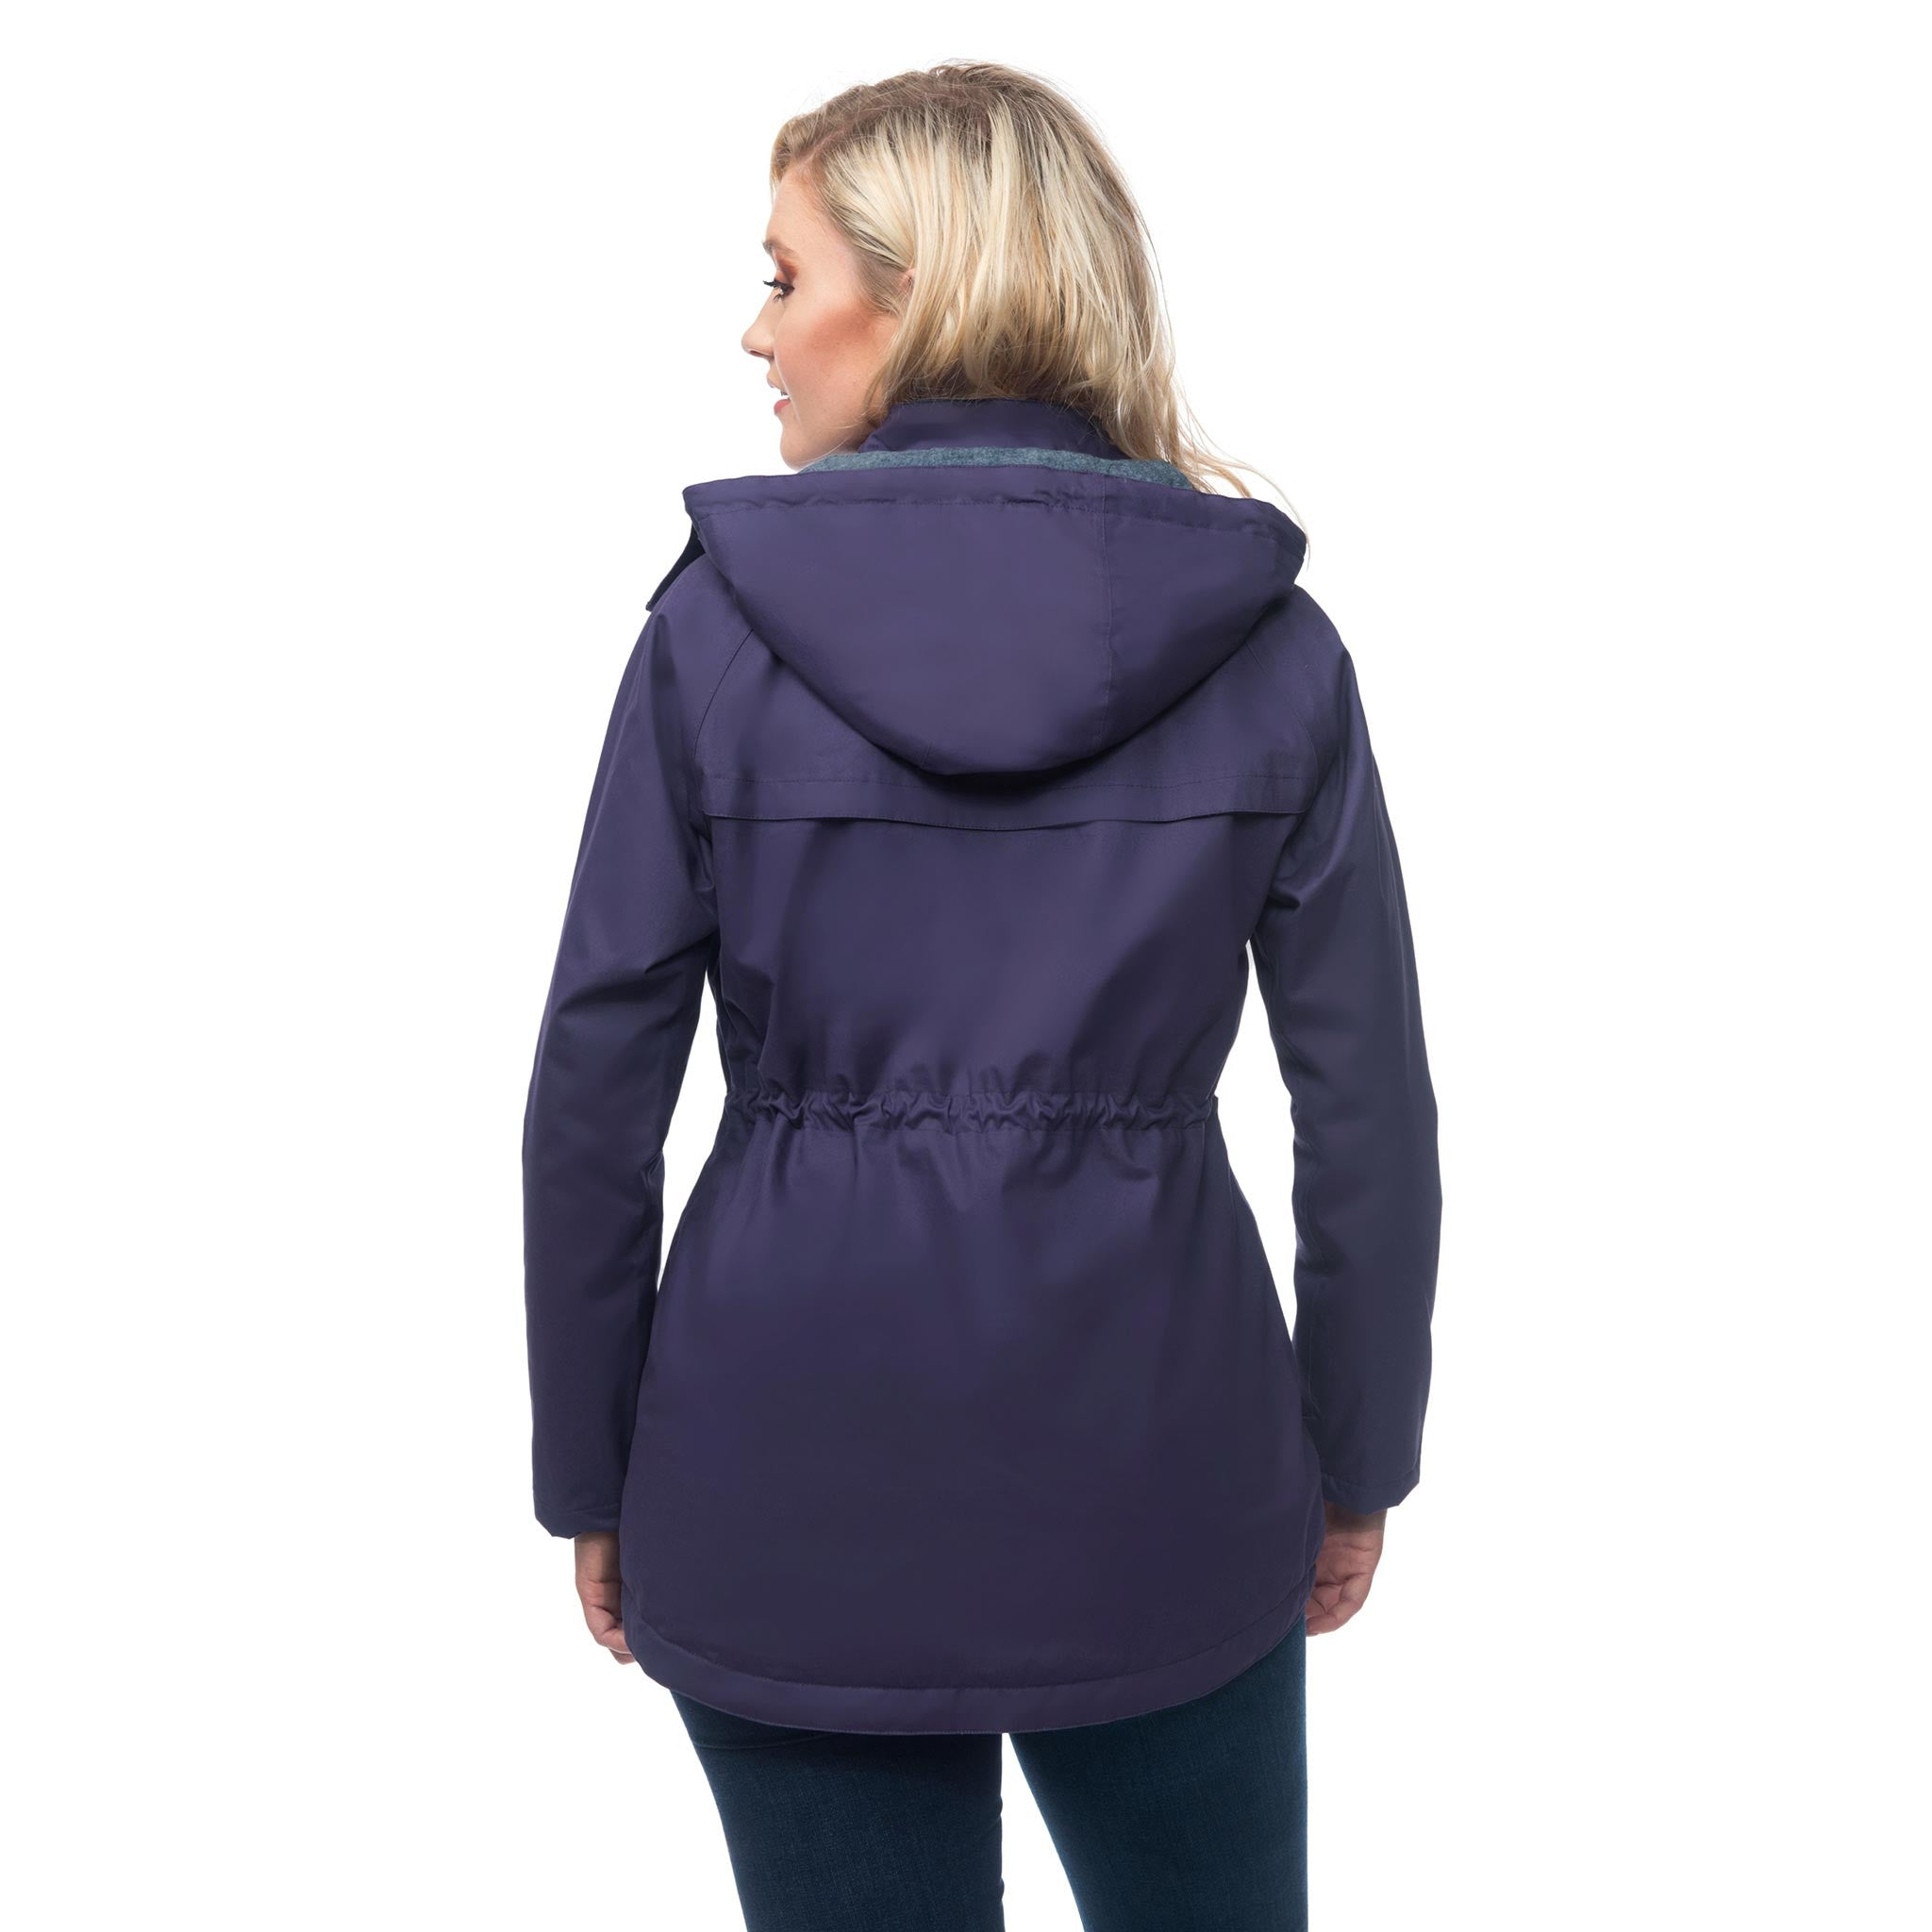 Lighthouse Lana Womens Waterproof Hooded Raincoat in Purple. Back view showing adjustable waist drawcord.